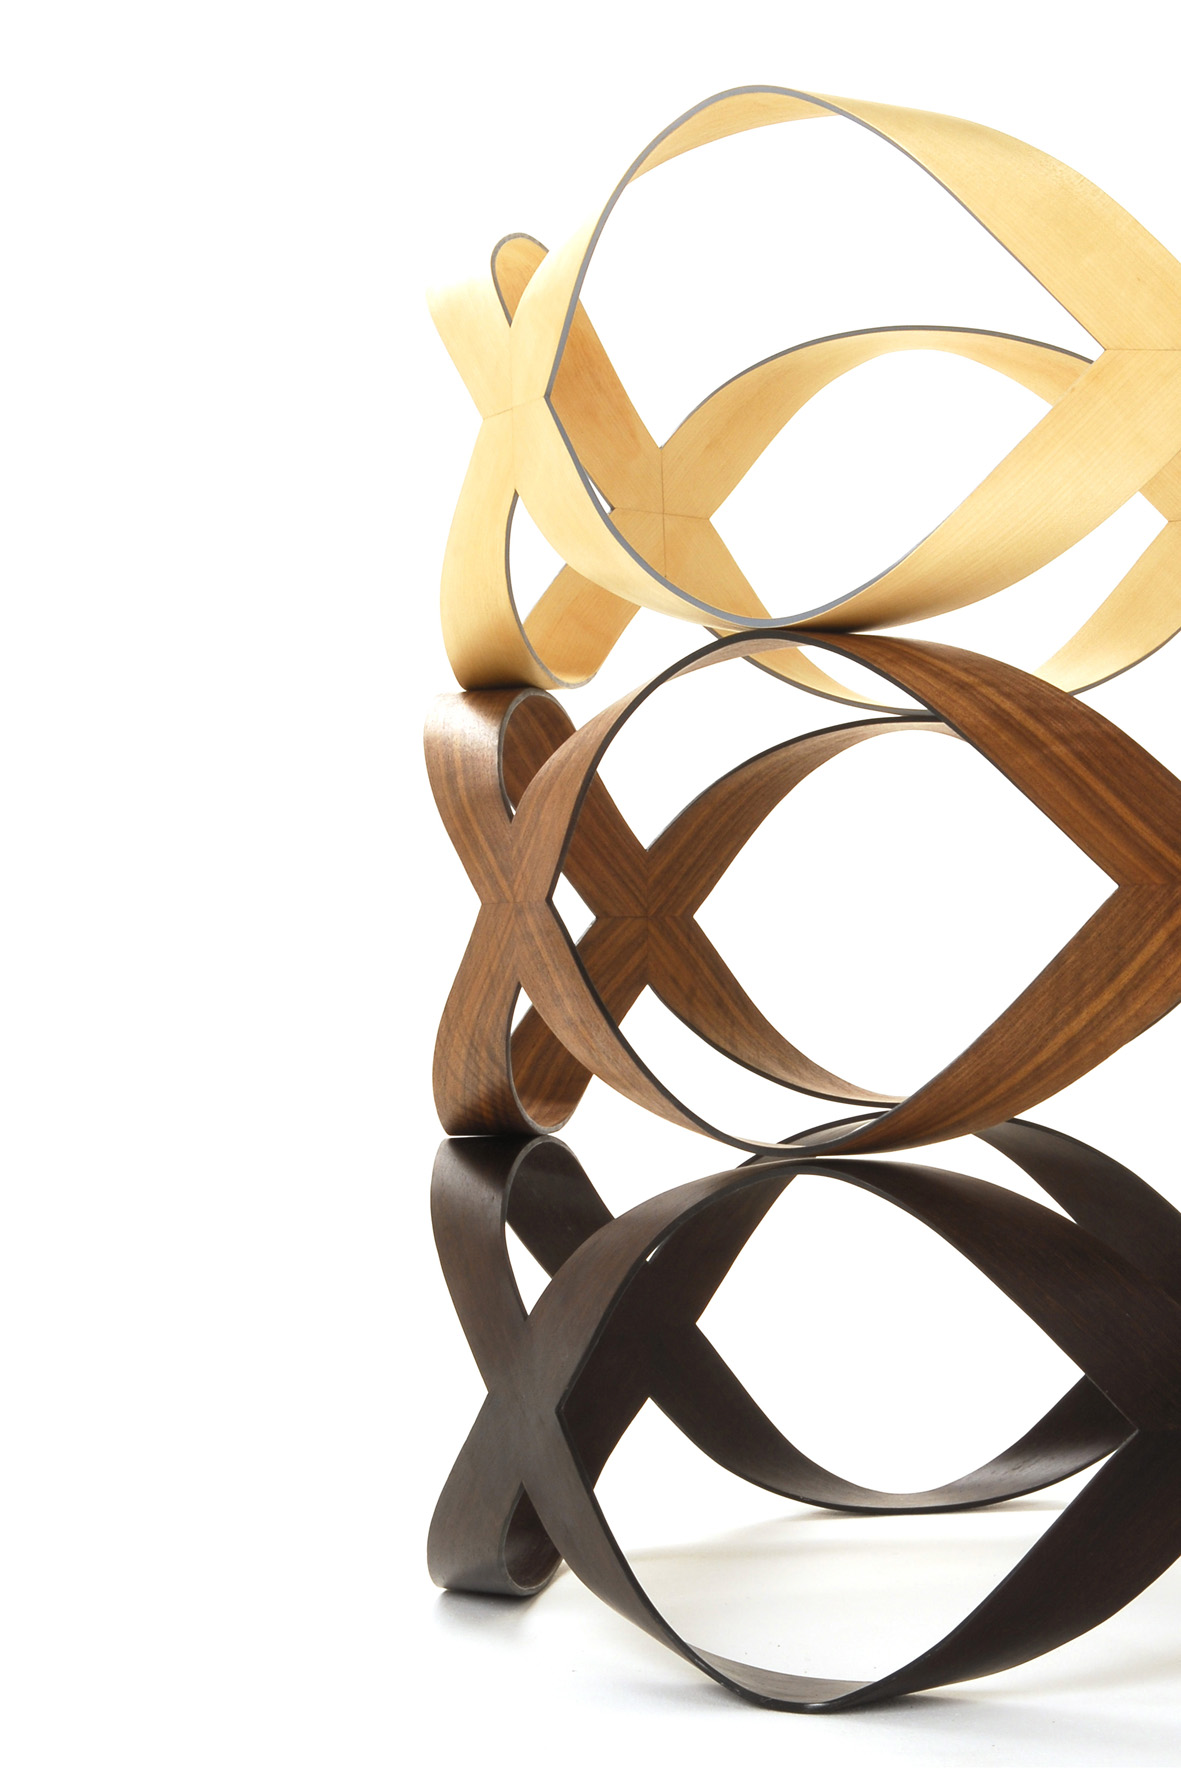 'Infinity + 1' coffee table - This multi award winning coffee table delivers intrigue and beauty through its elegant, flowing lines. Designed to be a piece of functional sculpture, 'Infinity + 1' is contemporary in style, yet very capable of sitting comfortably in any environment thanks to its relaxed and harmonious form.The aesthetic simplicity of 'Infinity + 1' masks both its complex construction and the deceptive strength of such a ribbon like structure.This table is available in American Black Walnut, Maple, Sweet Chestnut or Cherry as standard, other timbers, including coloured veneers, are possible but may incur a small surcharge.  Edge colours can be matched to specific colours or existing décor.Dimensions: Height 30cm, diameter 100cm Price: £2900